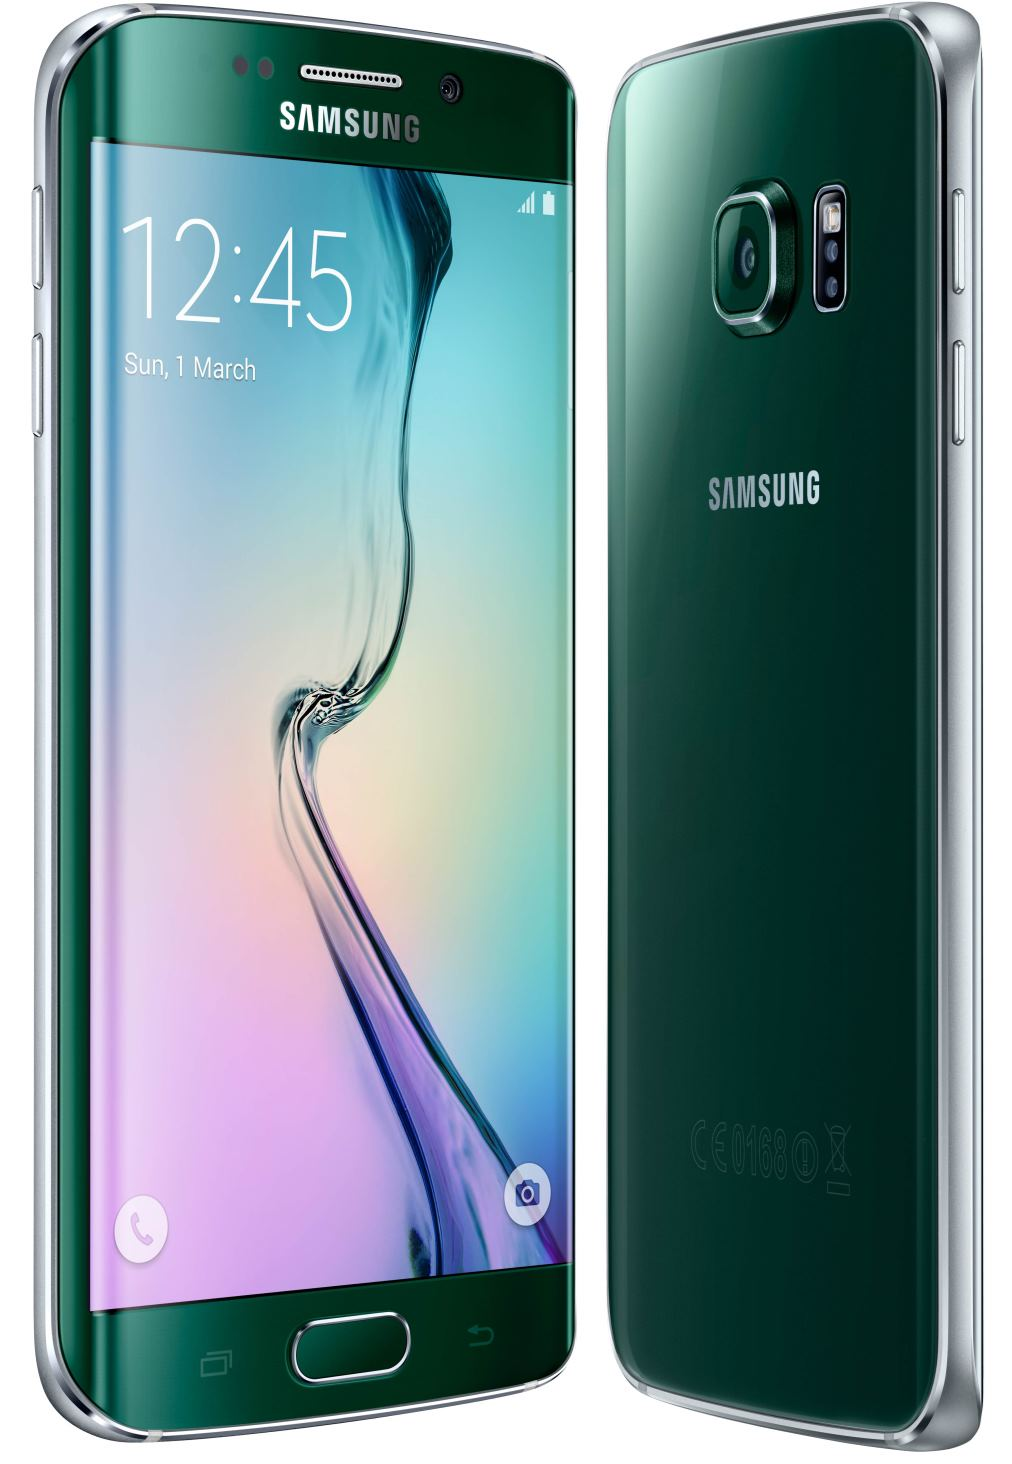 Samsung Galaxy S6 edge vs Note 4 edge